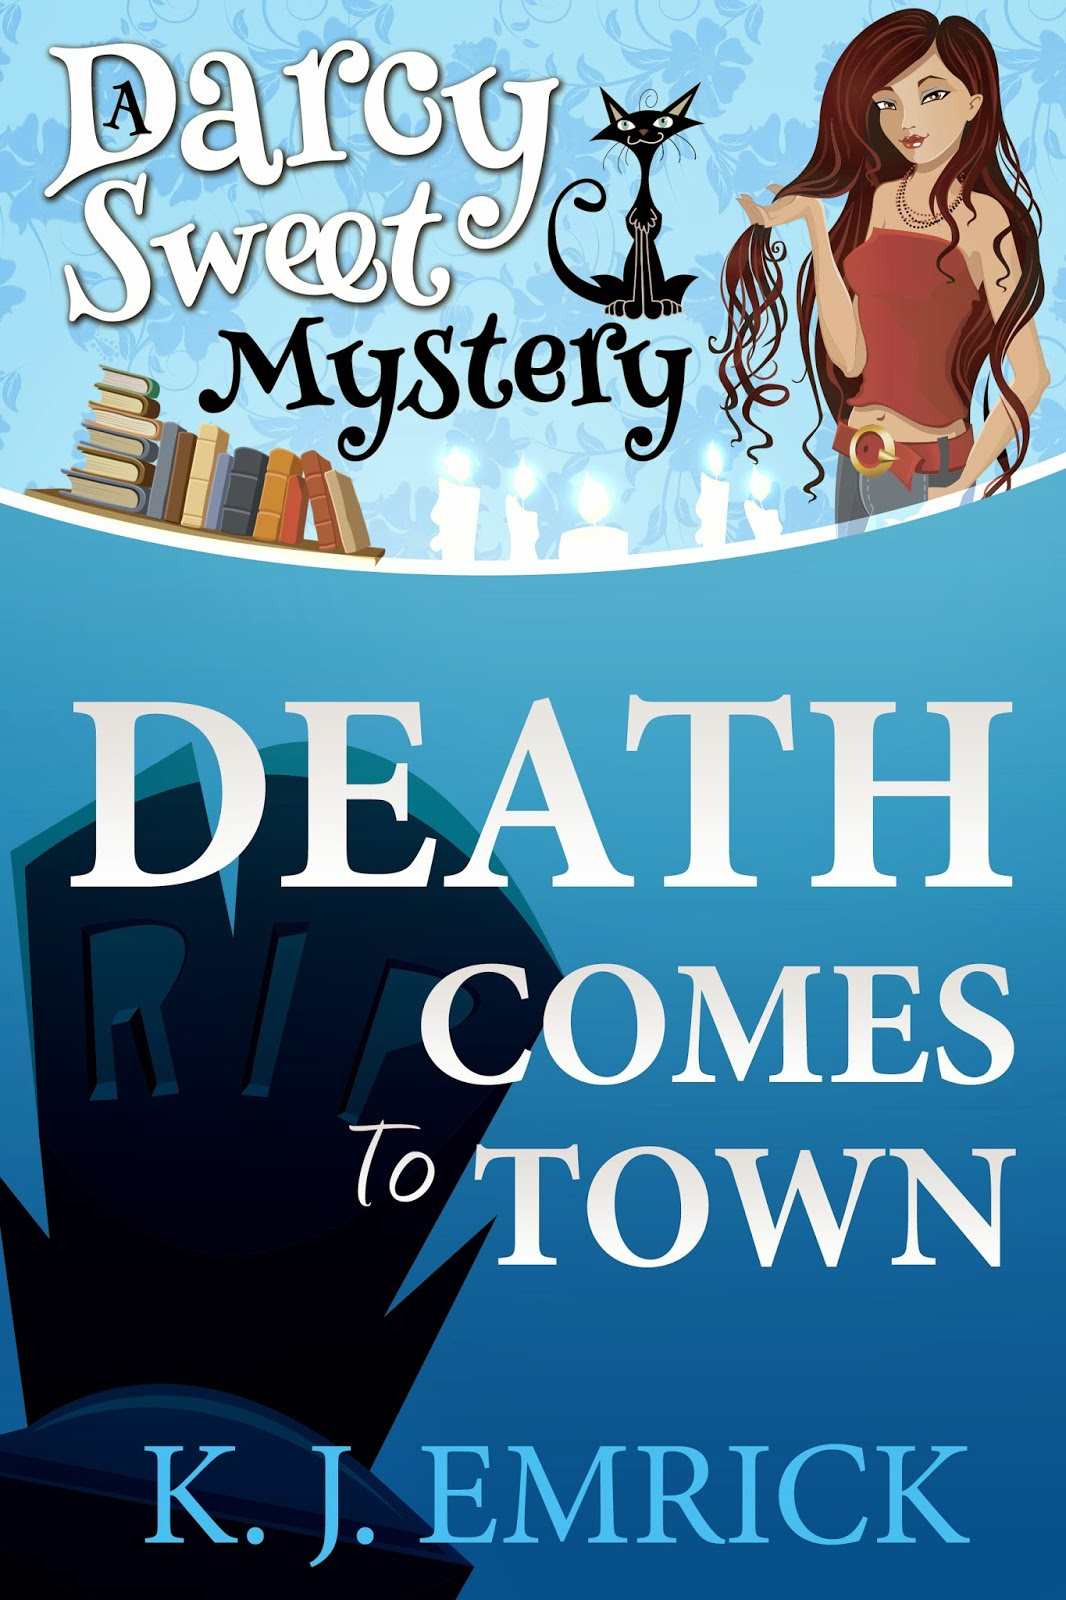 Death Comes to Town by K.J. Emrick